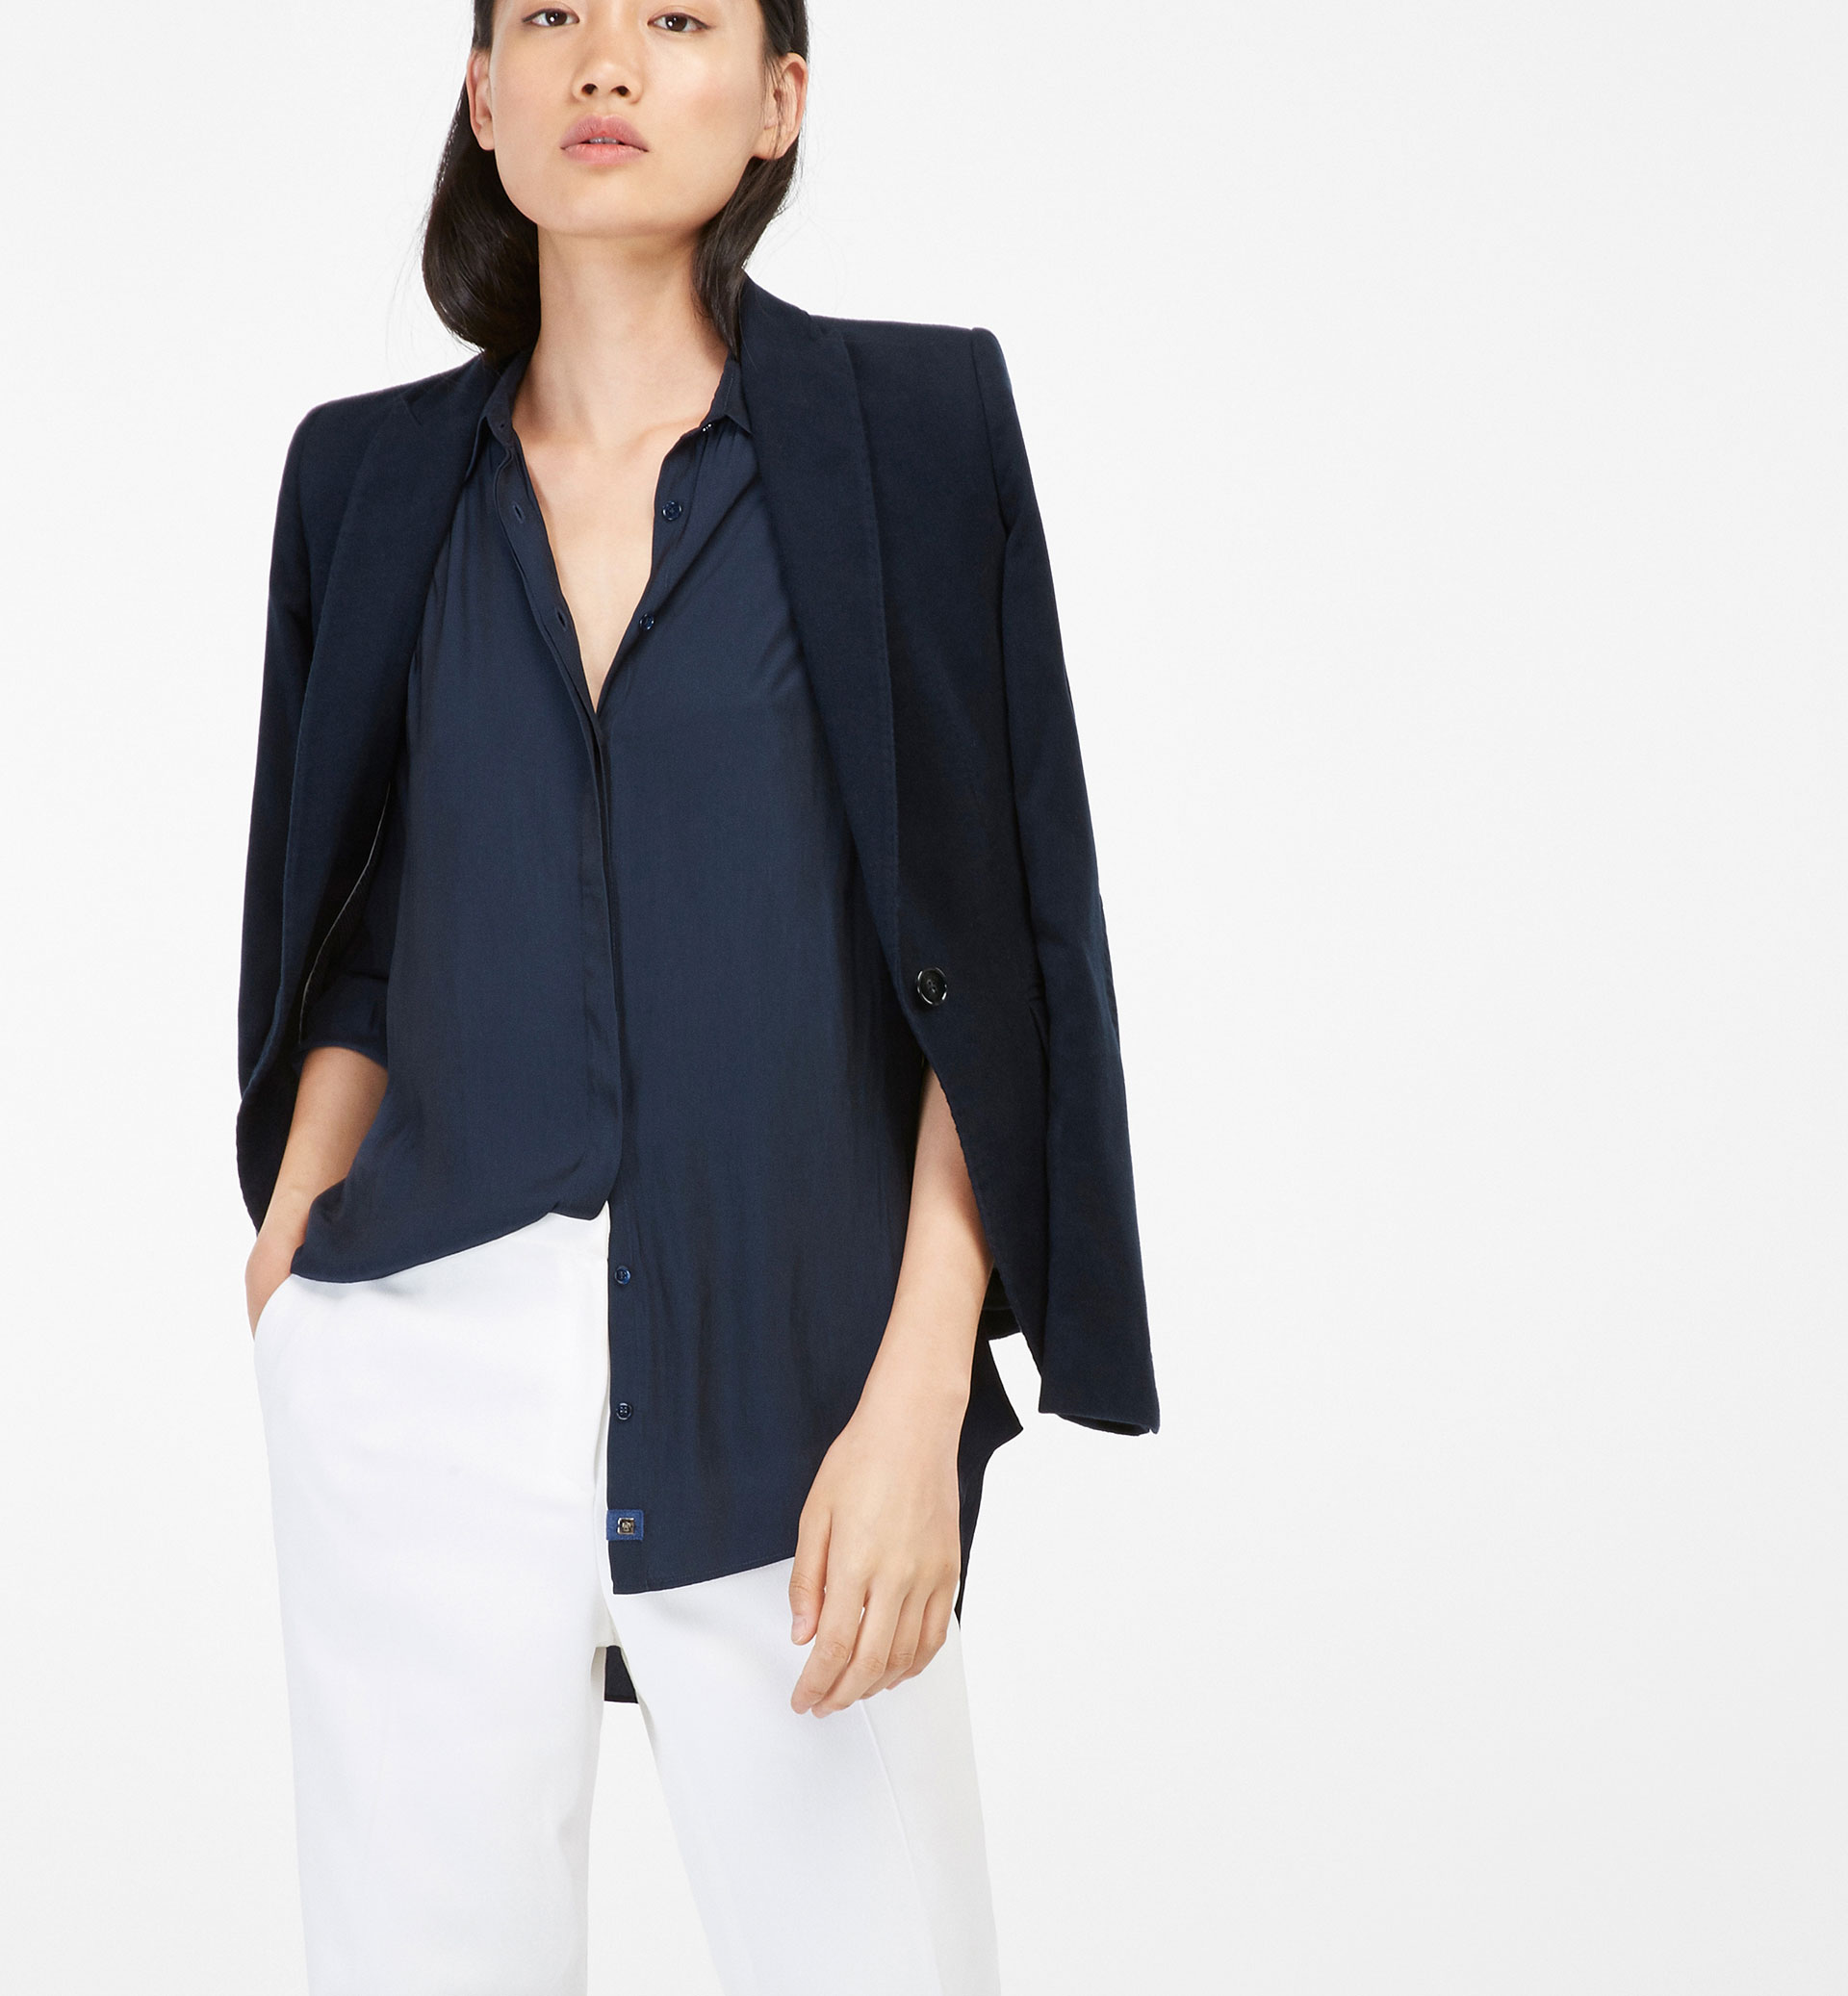 NAVY FLOWING SHIRT